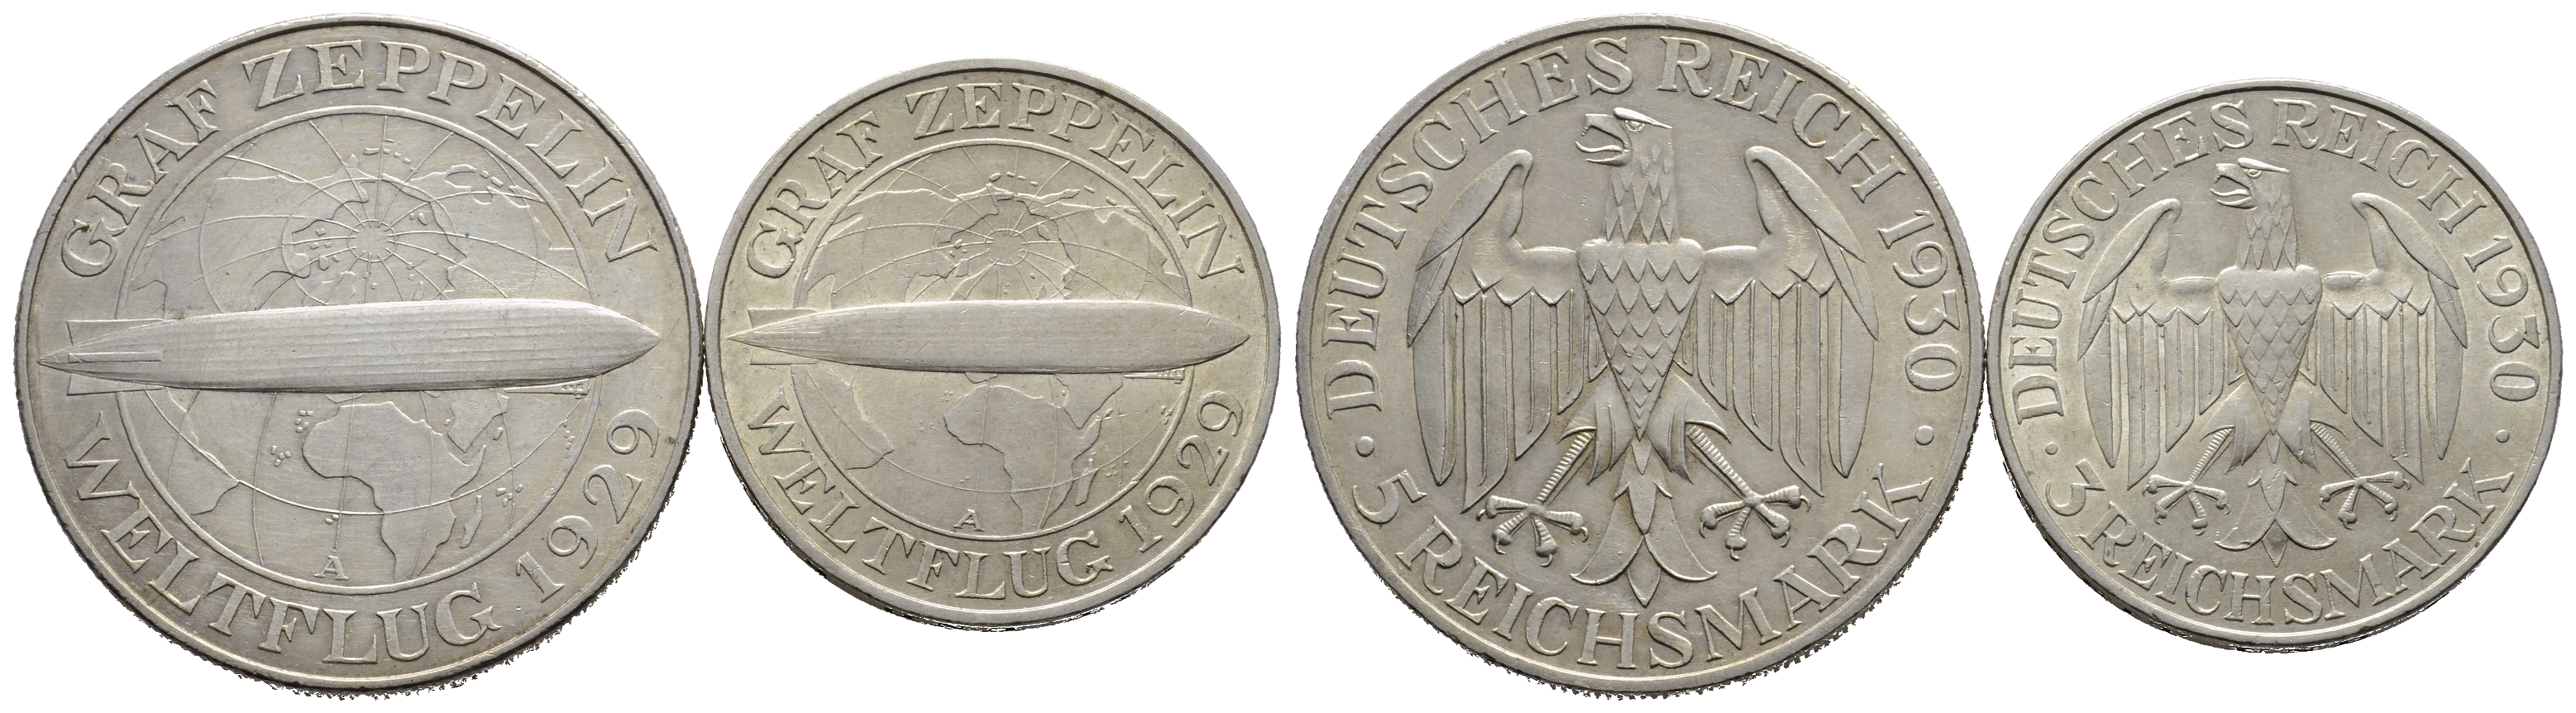 image in new window